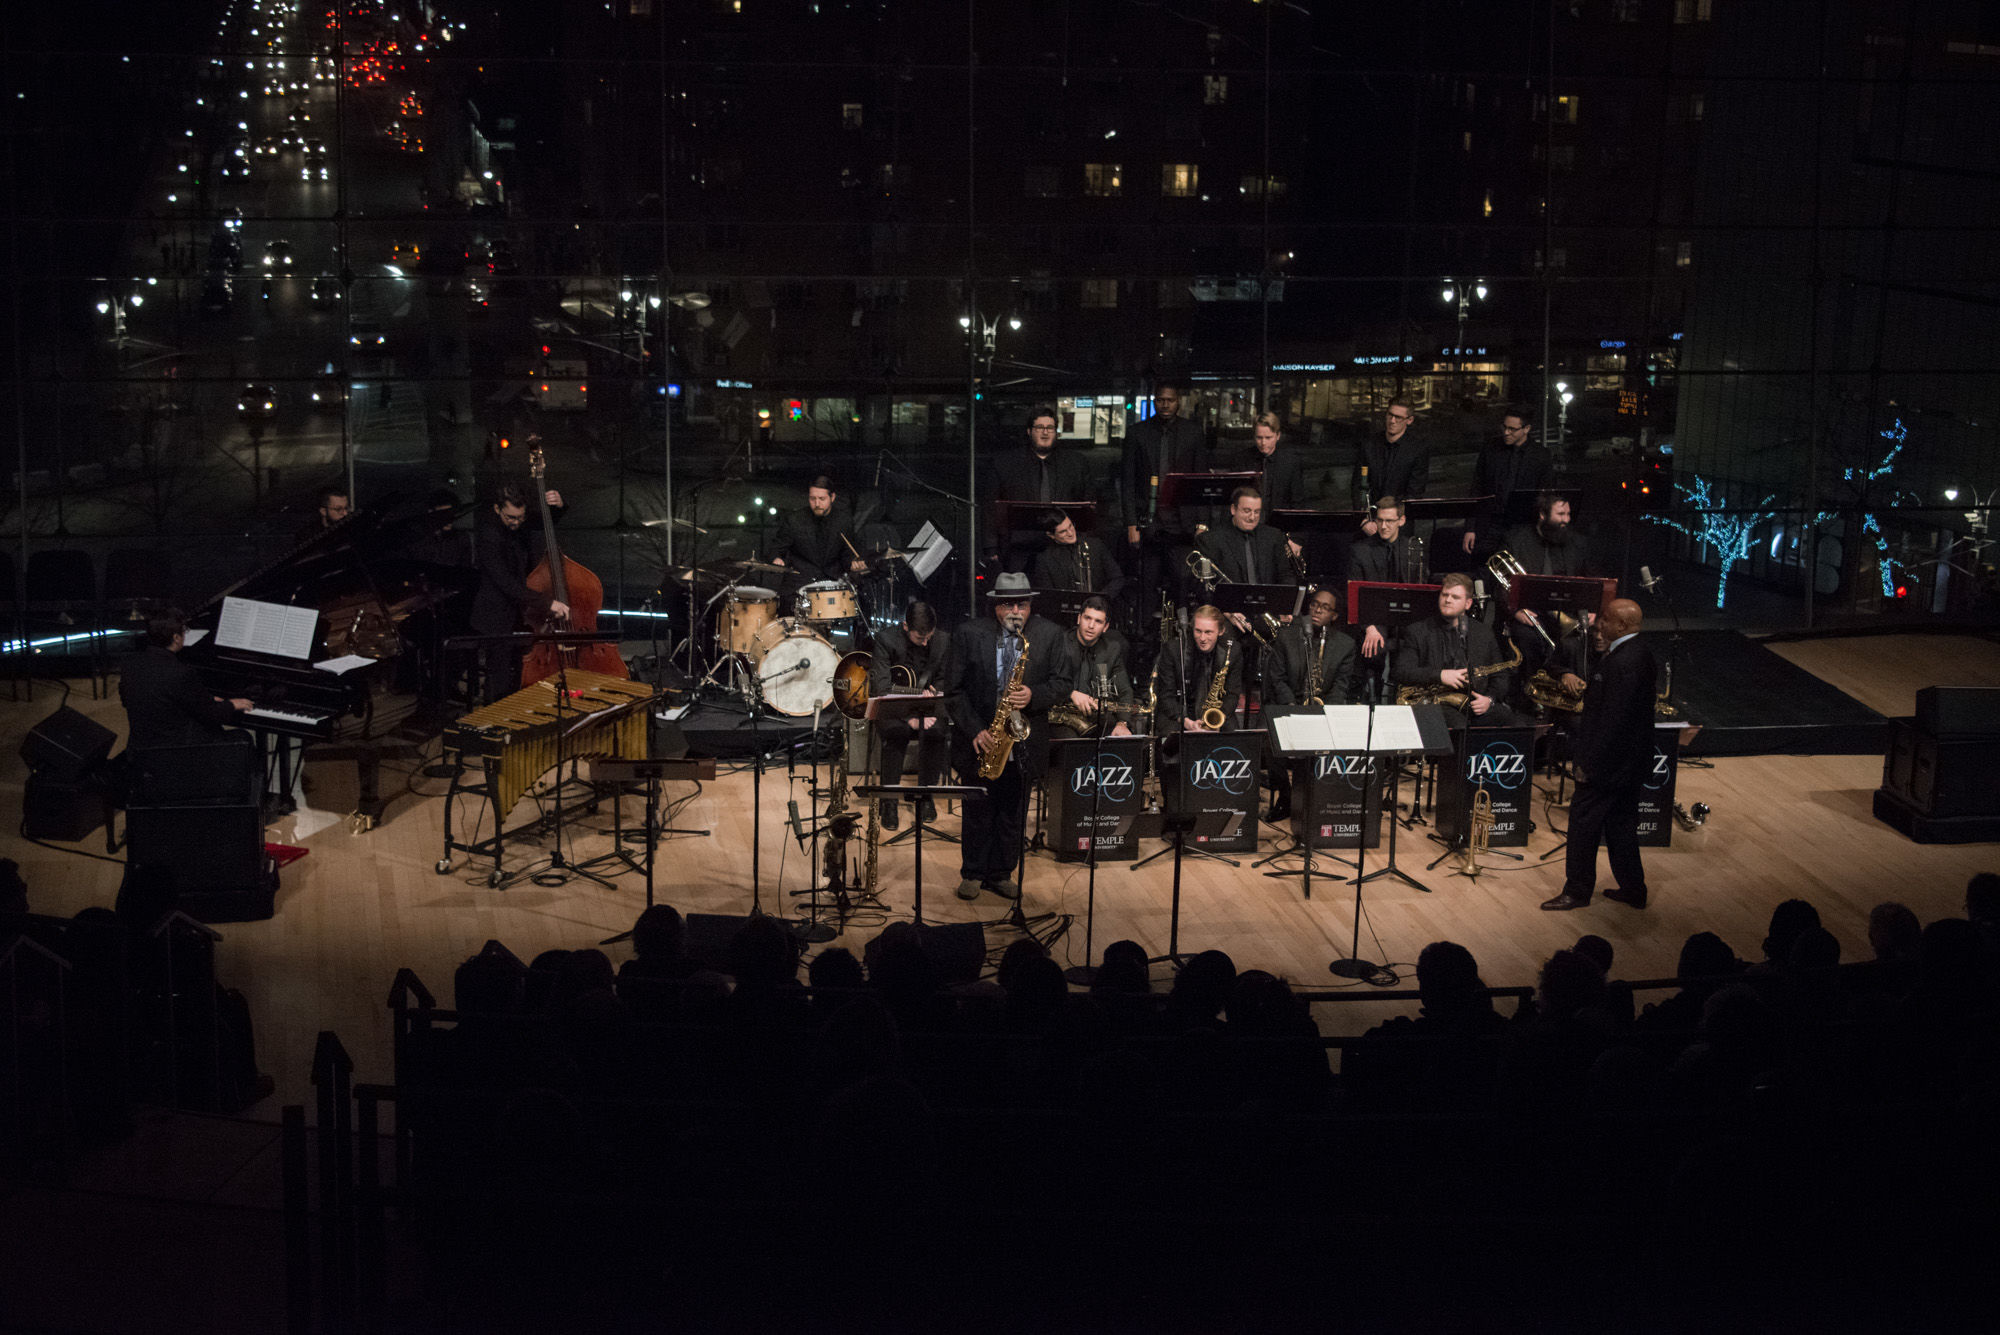 Temple University Jazz Band musicians perform on stage at the The Appel Room at Jazz at Lincoln Center.